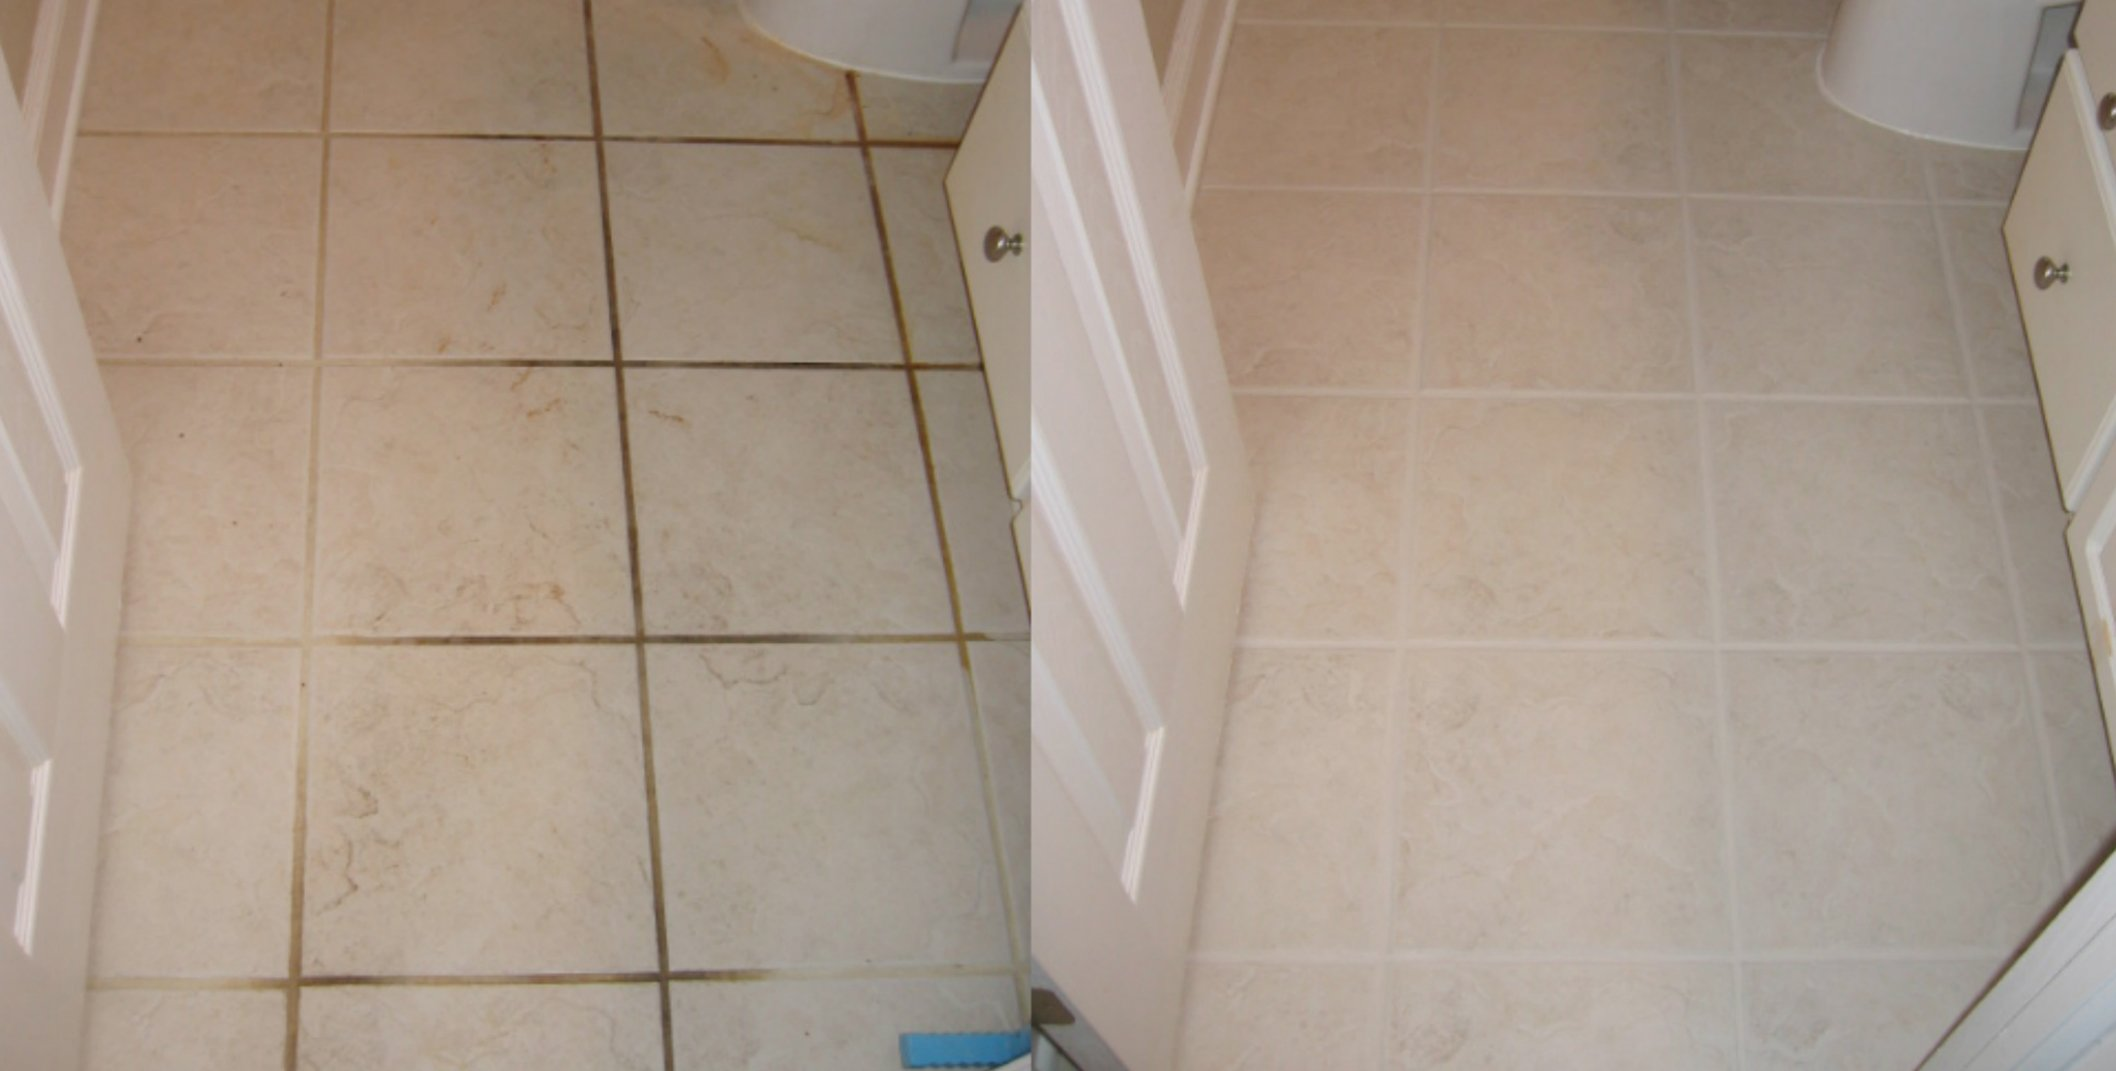 How to clean bathroom and kitchen tile floors easily How to clean bathtub